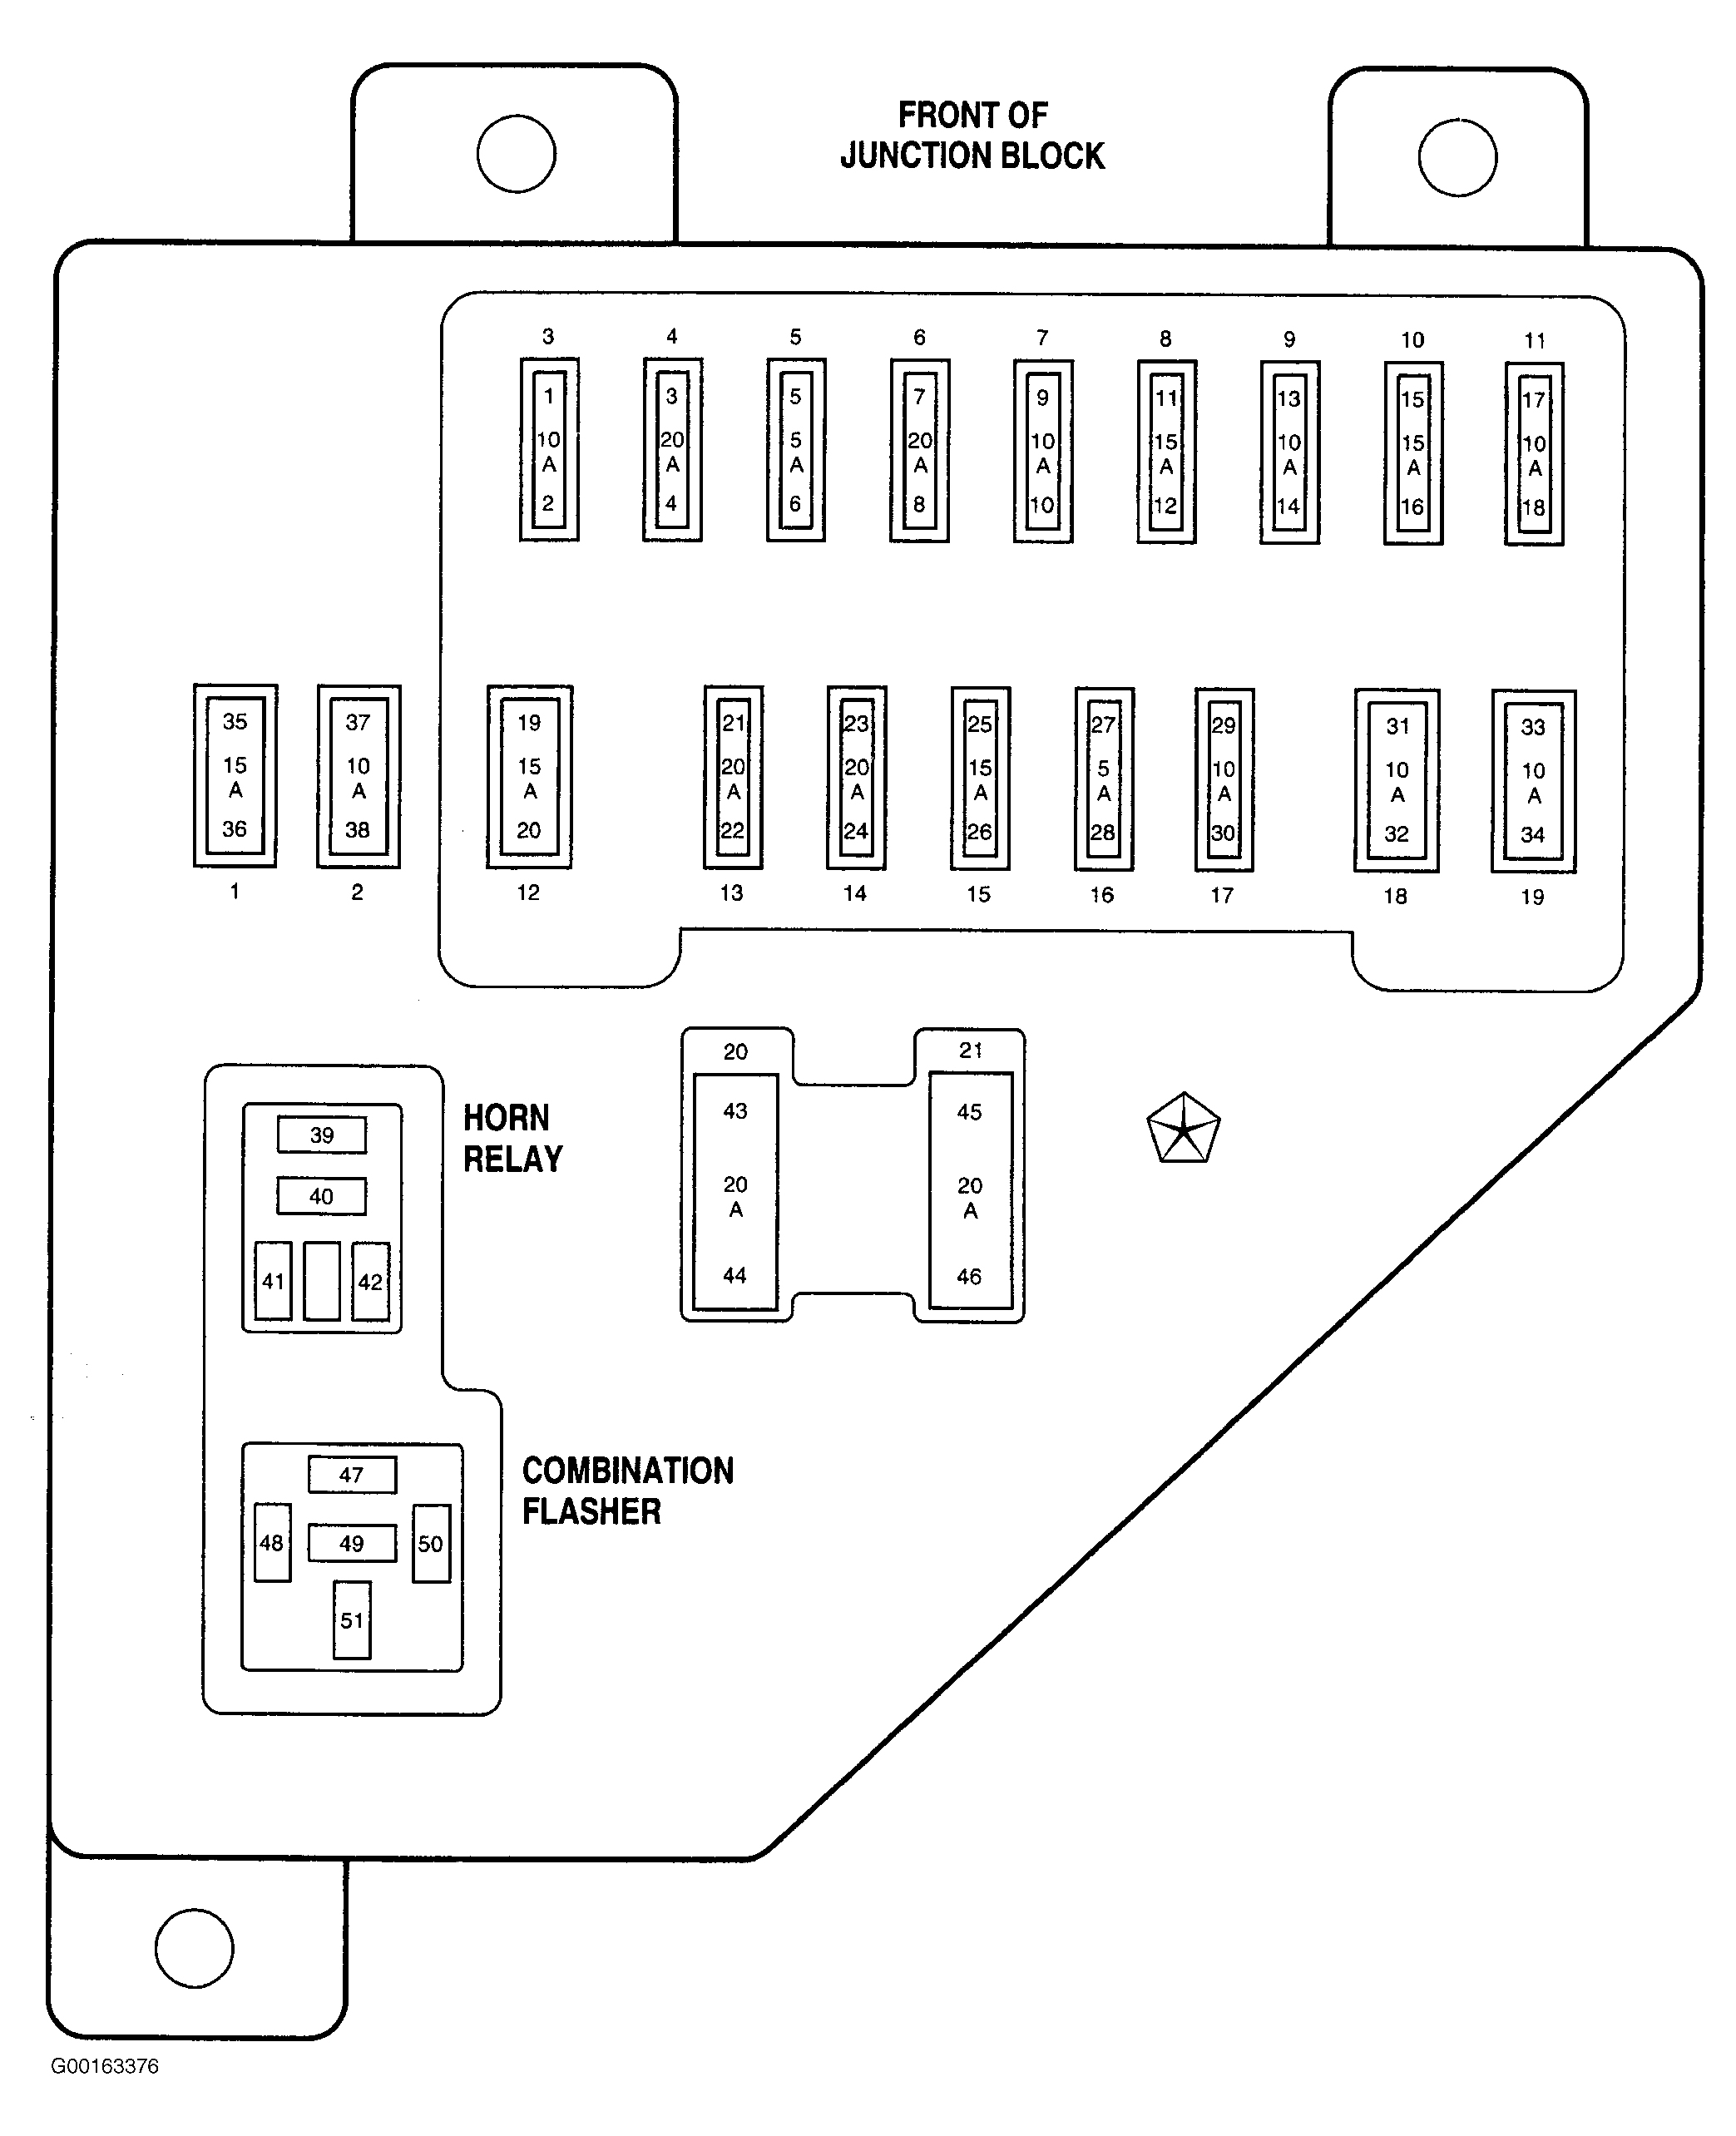 1998 Dodge Ram Fuse Diagram - Data Wiring Diagram Today - 1998 Dodge Ram Trailer Wiring Diagram